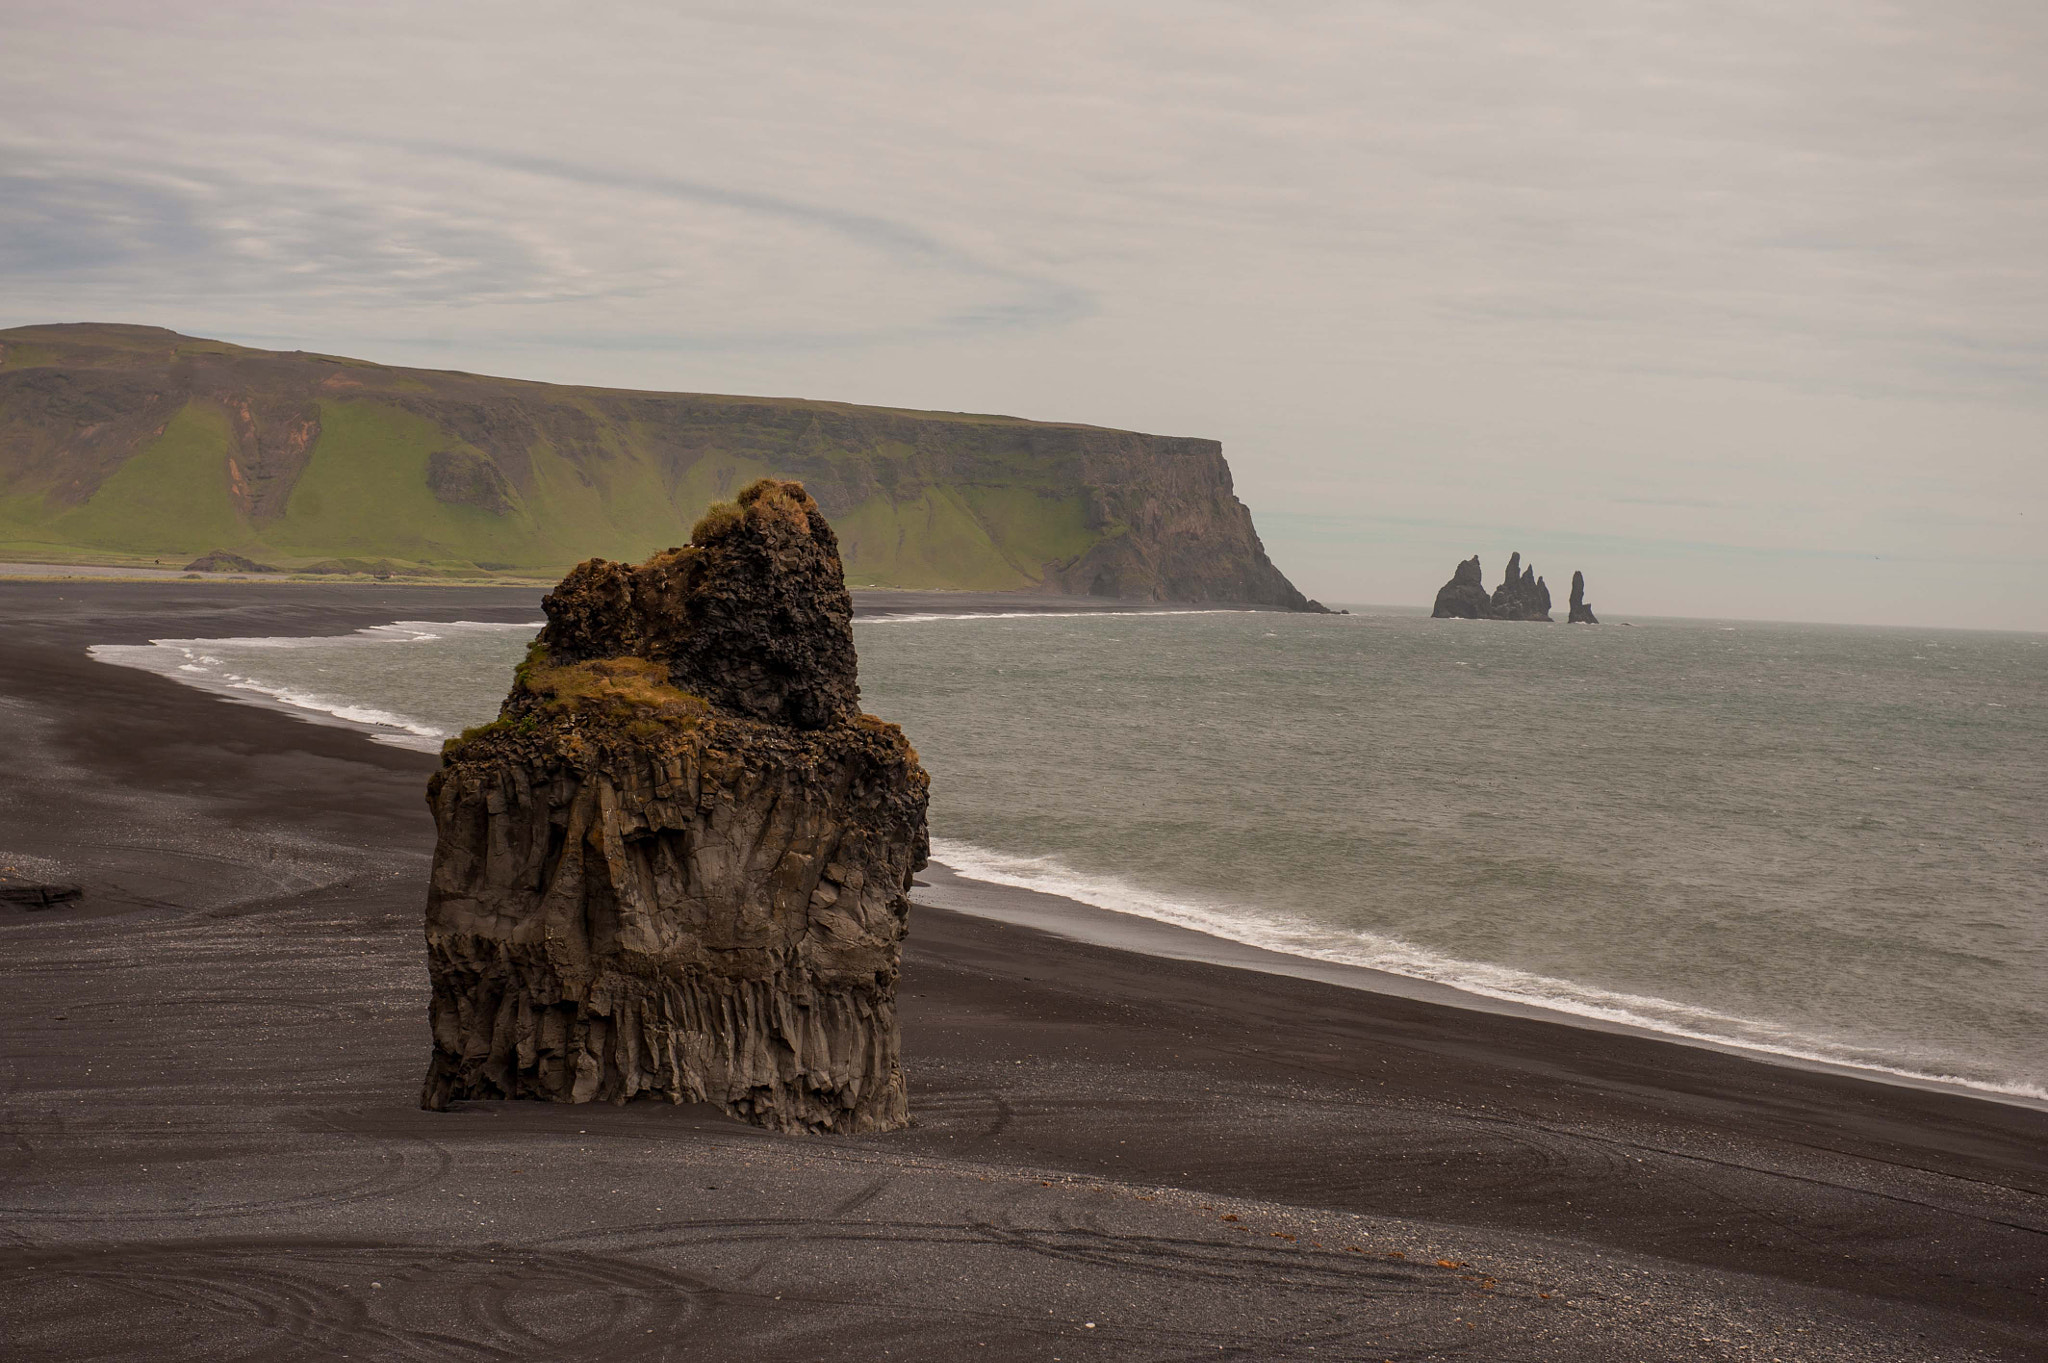 Photograph Vik,iceland by varadhan ganapathy on 500px